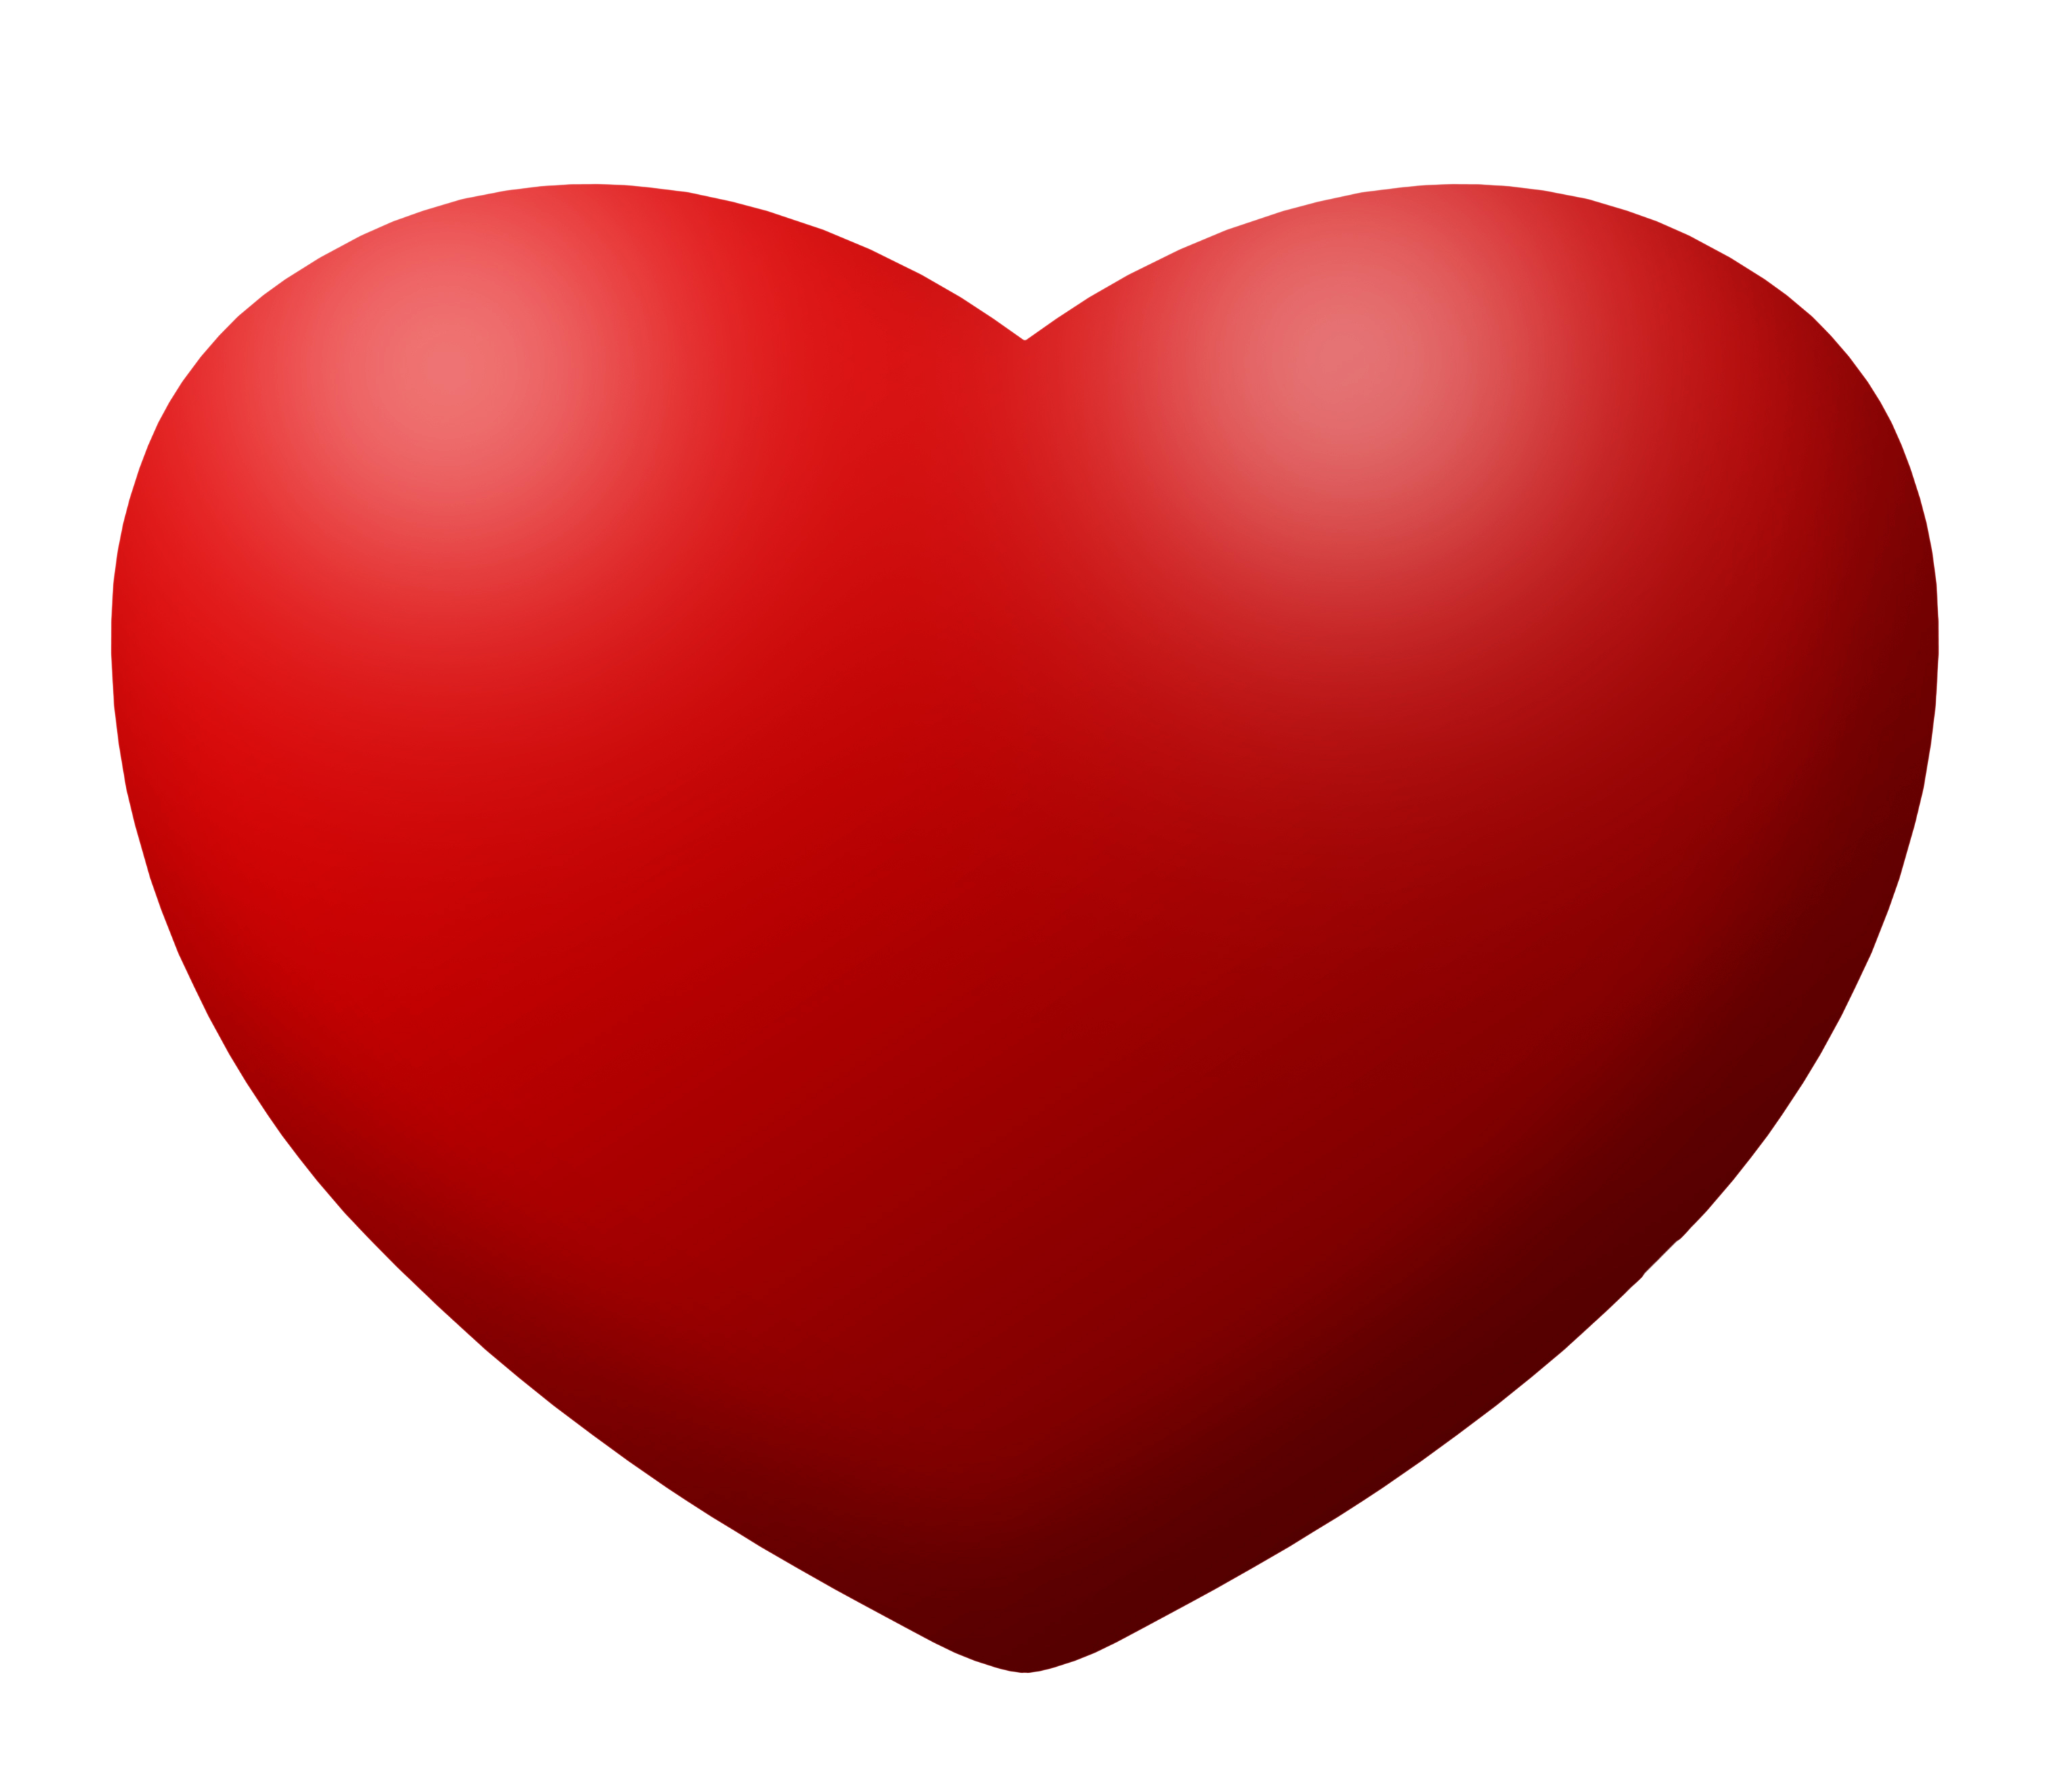 Hearts PNG HD - 138933